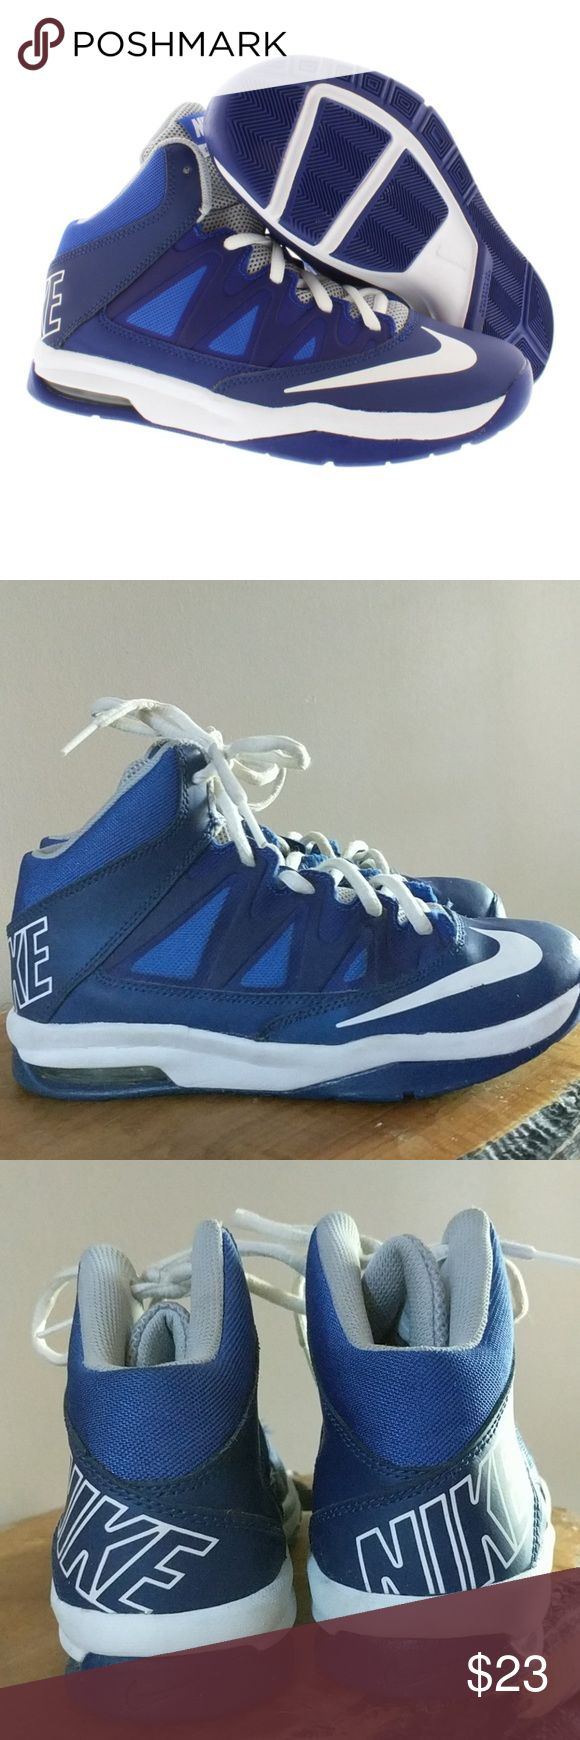 Nike Stutter Step Basketball Shoes This youth shoes are in great condition. *Lightweight performance *Midfoot support *Cushioned ride *3.5 Y Nike Shoes Sneakers